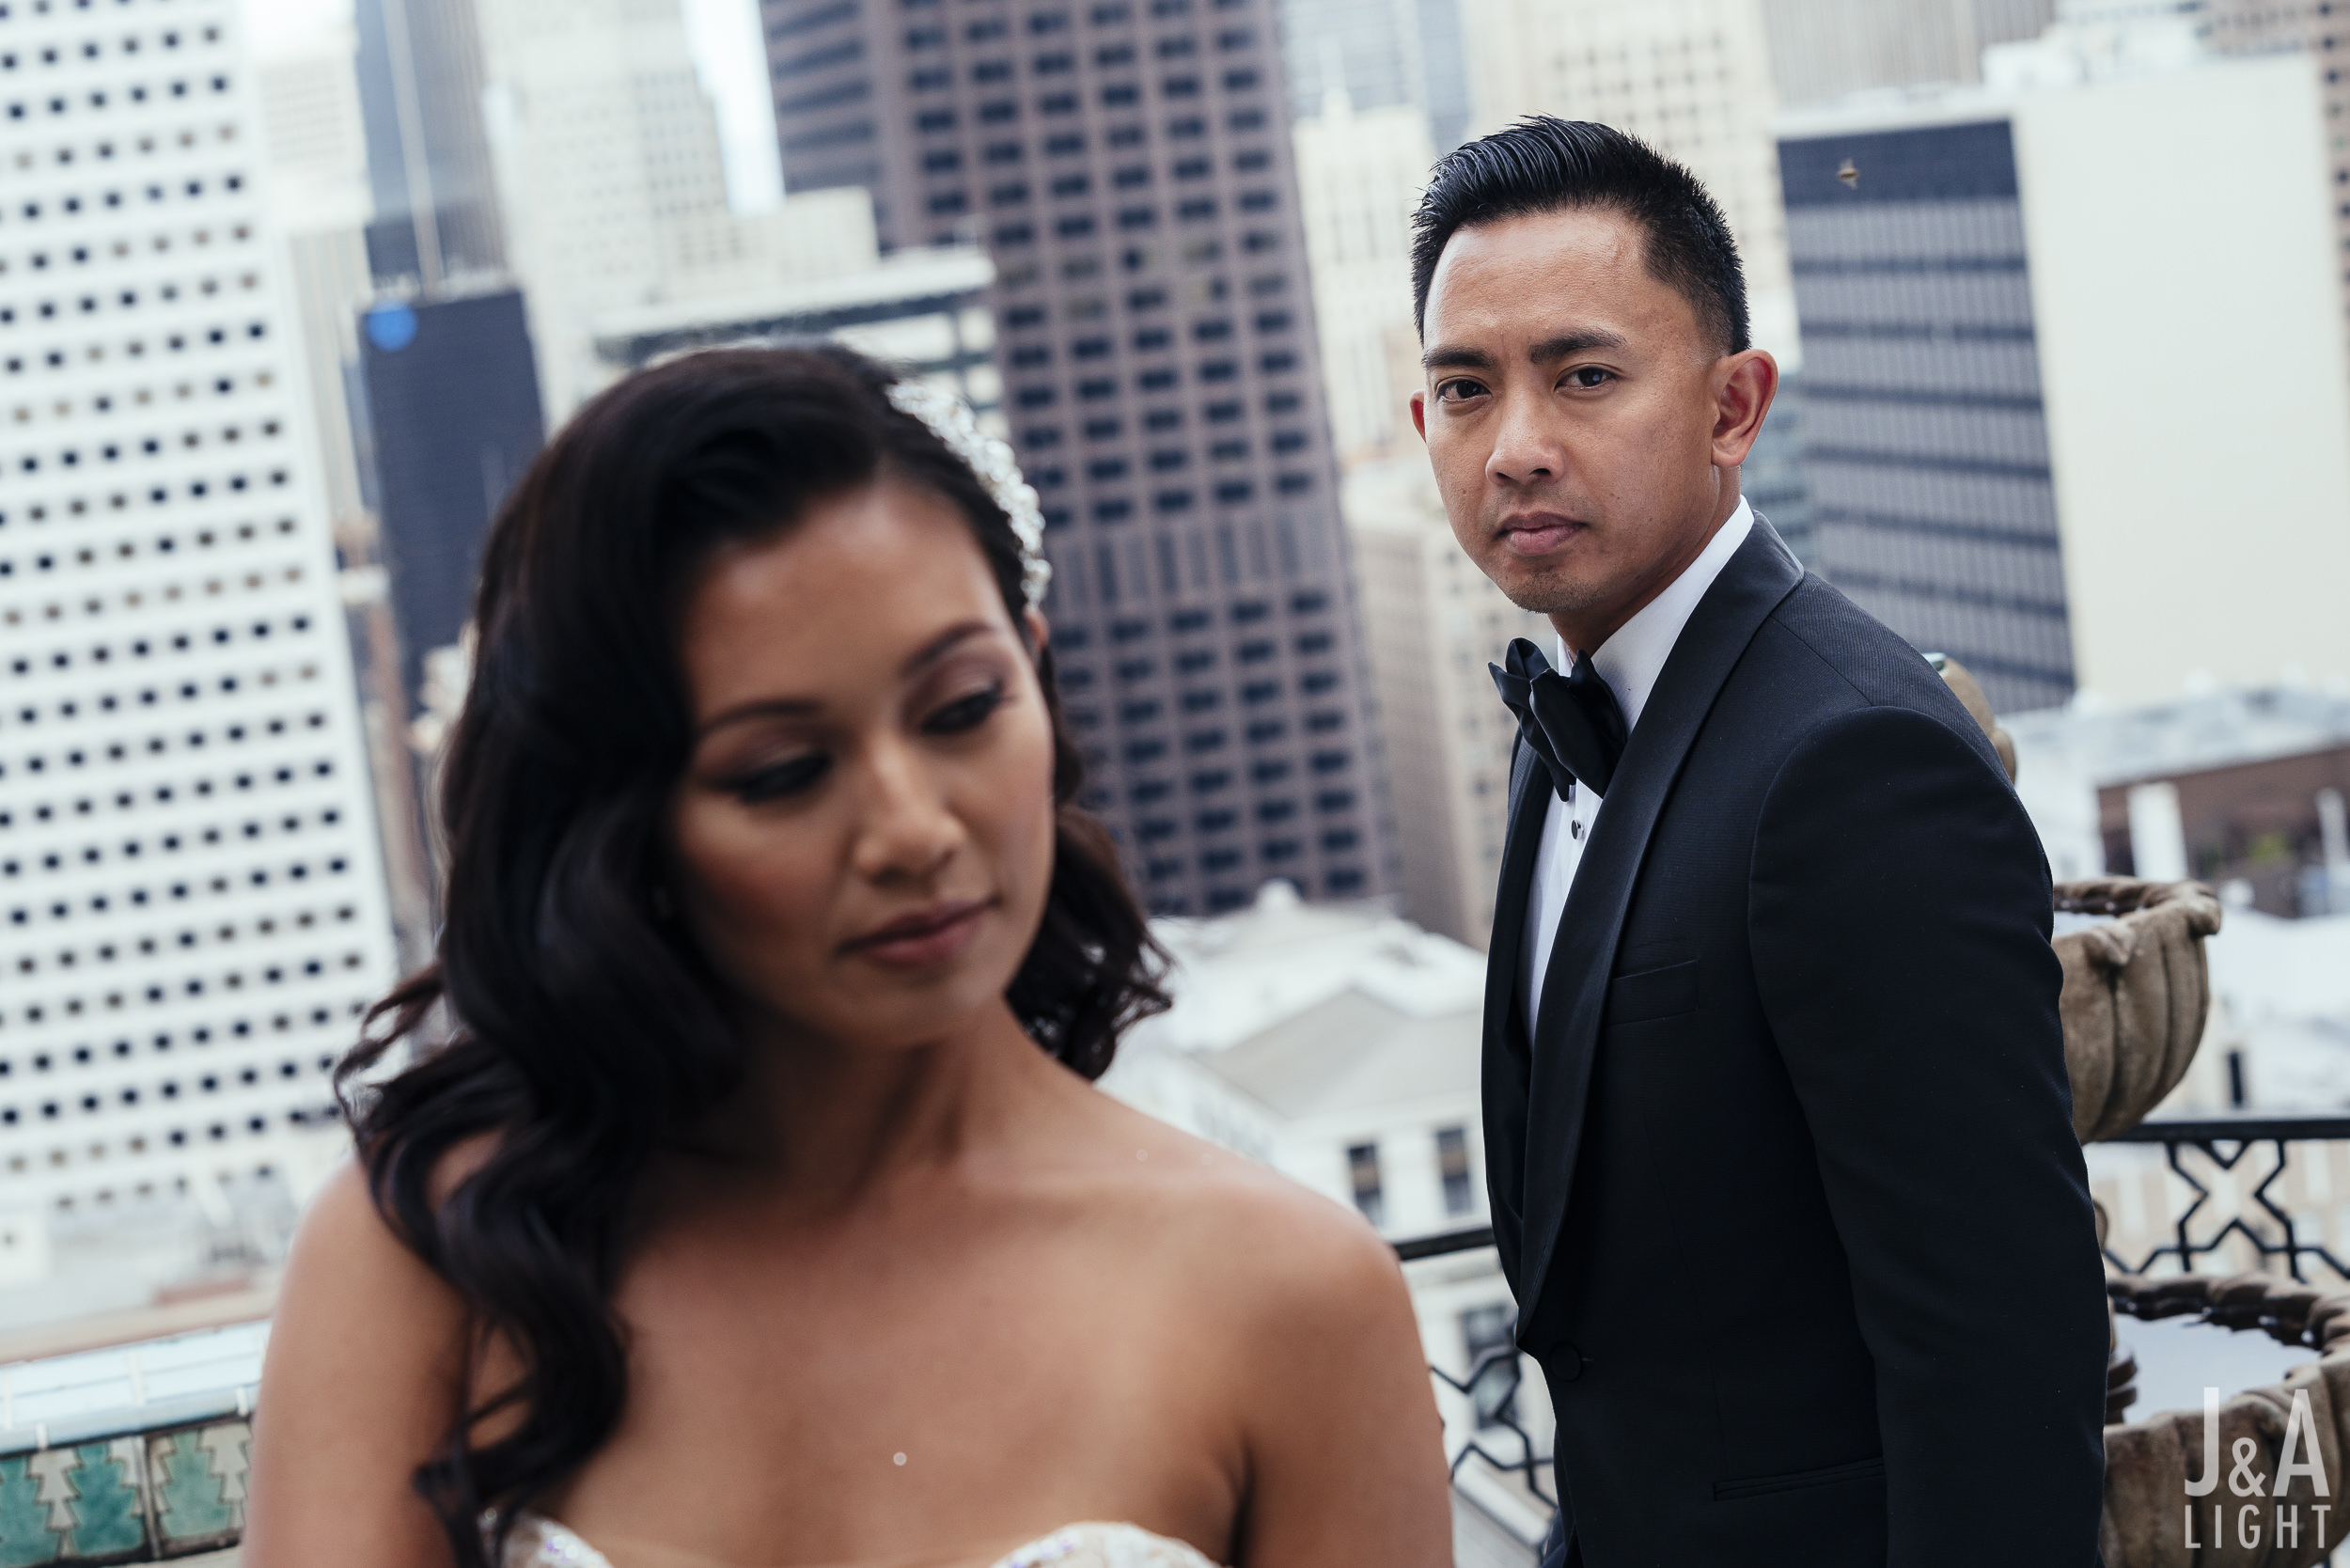 20180722-AdrJohPost-FairmontSanFranciscoWedding_FairmontEngagement-015.jpg